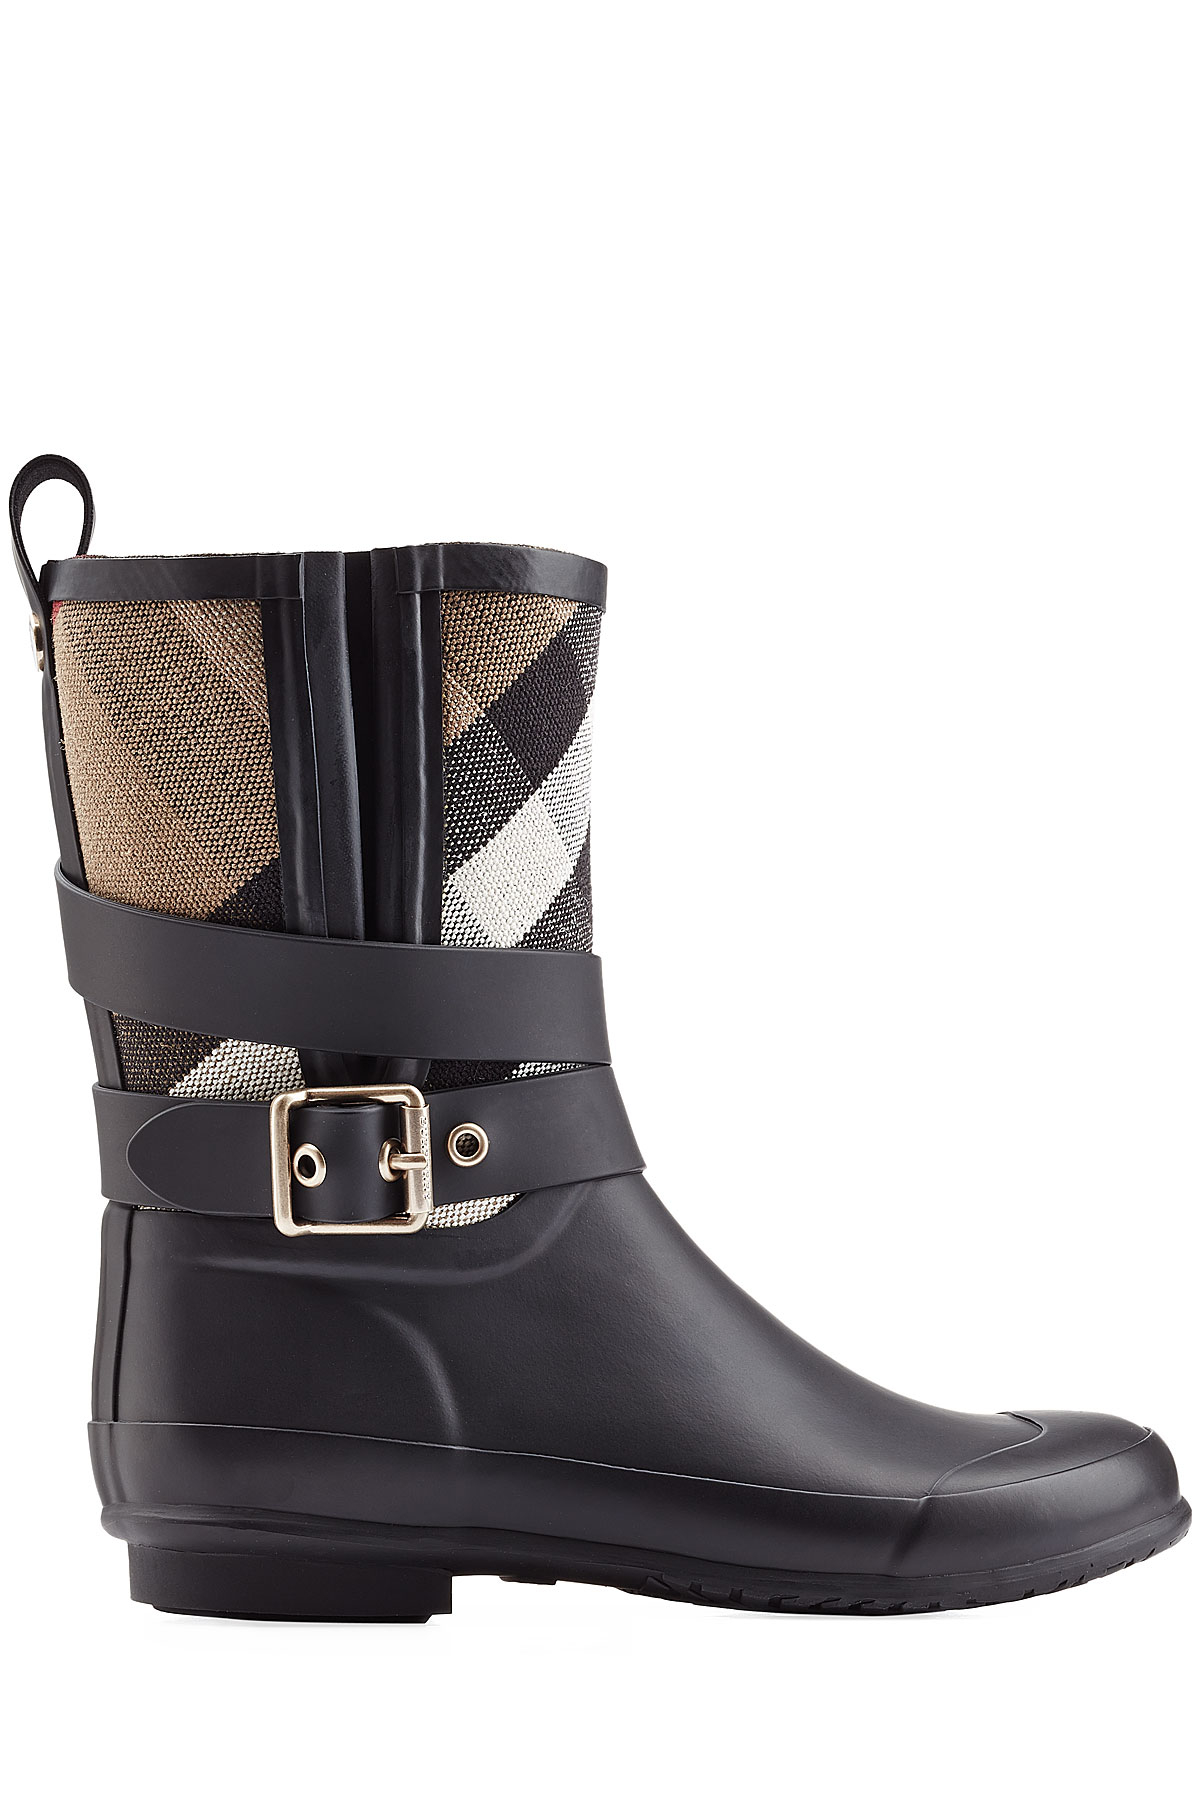 burberry holloway rubber rain boots black in black lyst